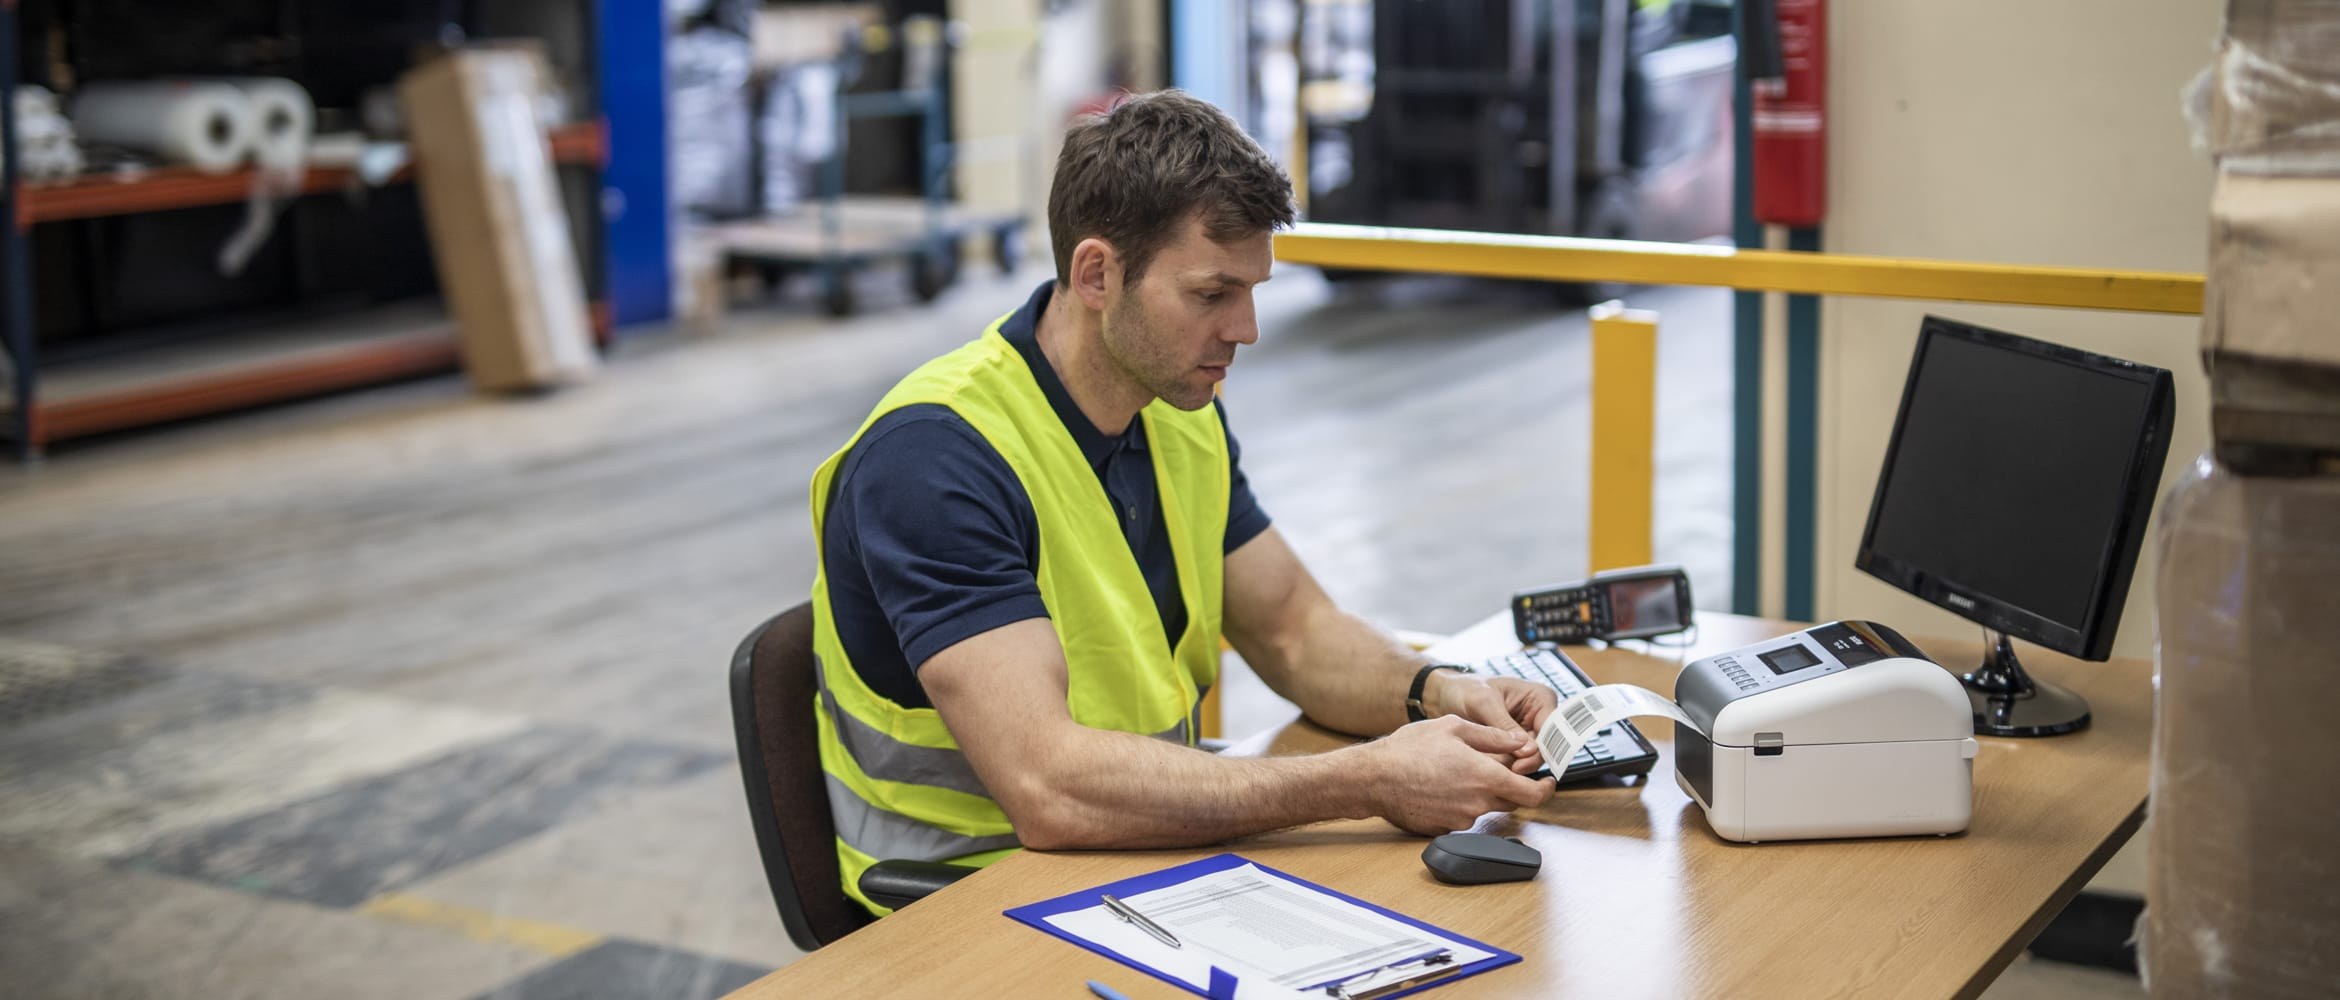 Man with short brown hair wearing yellow hi-vis sat in warehouse at a table, paper, pen, monitor, Brother TD label printer